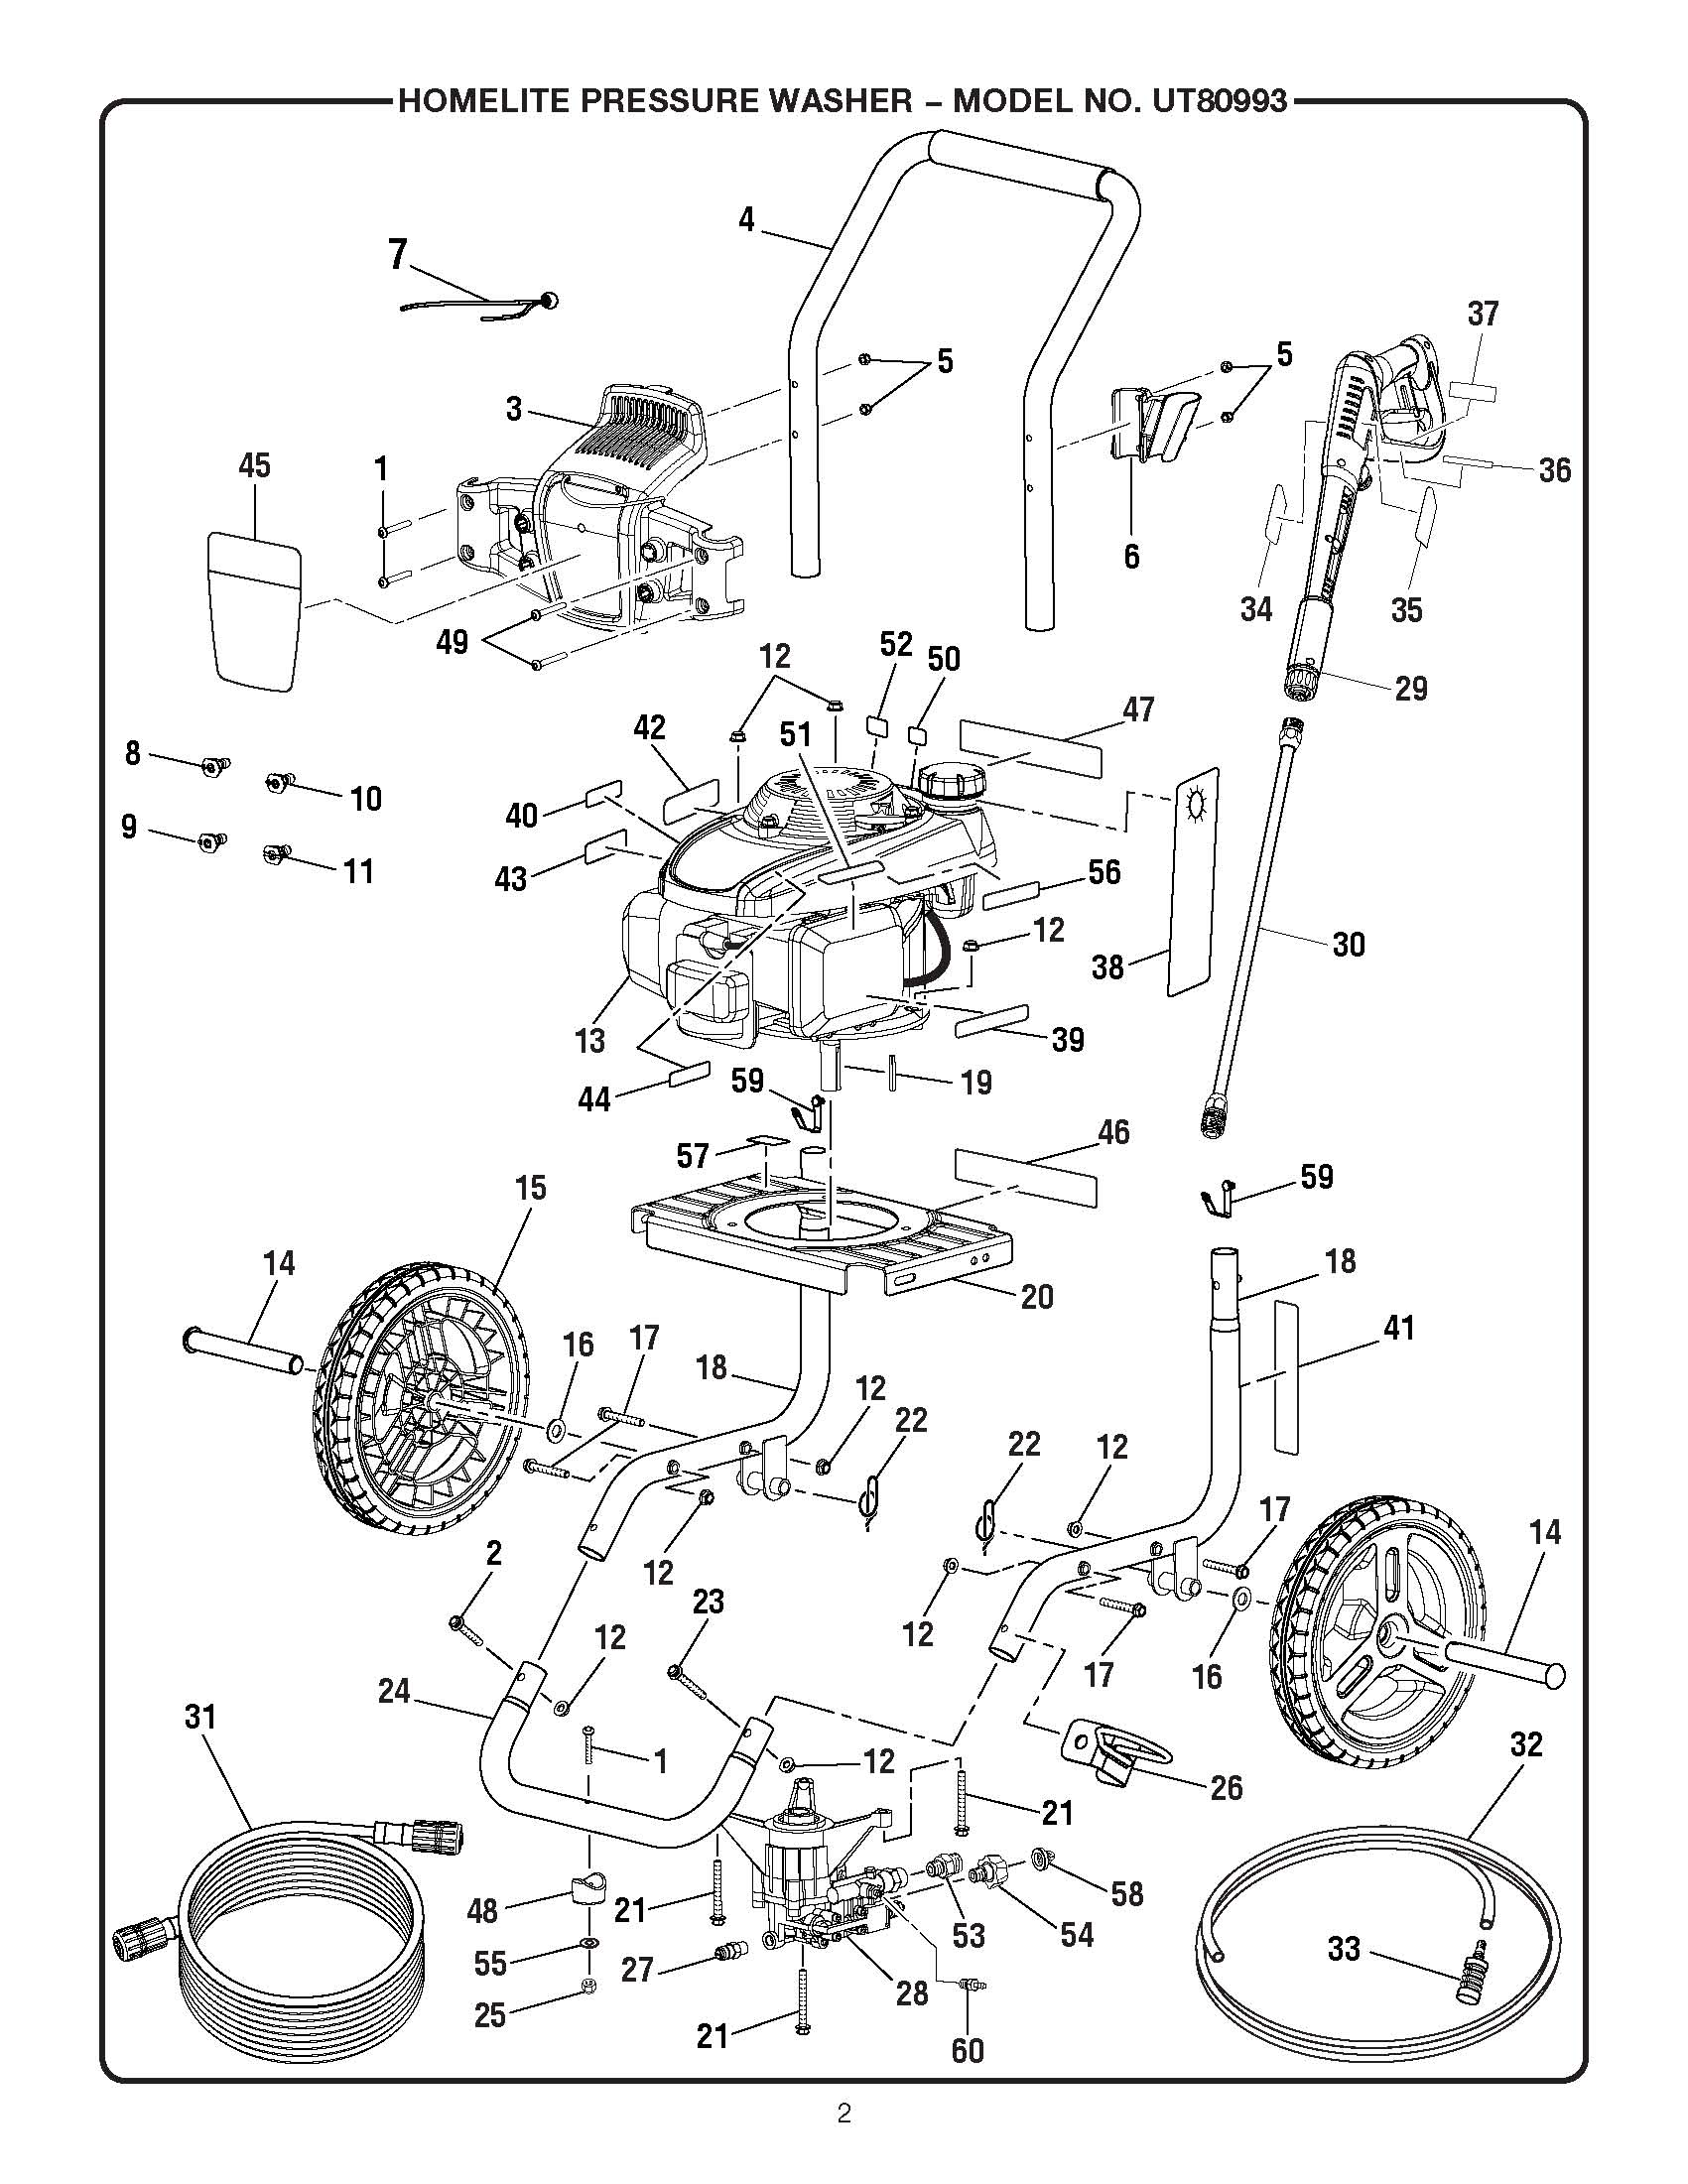 UT80993 - Pressure Washer Parts schematic